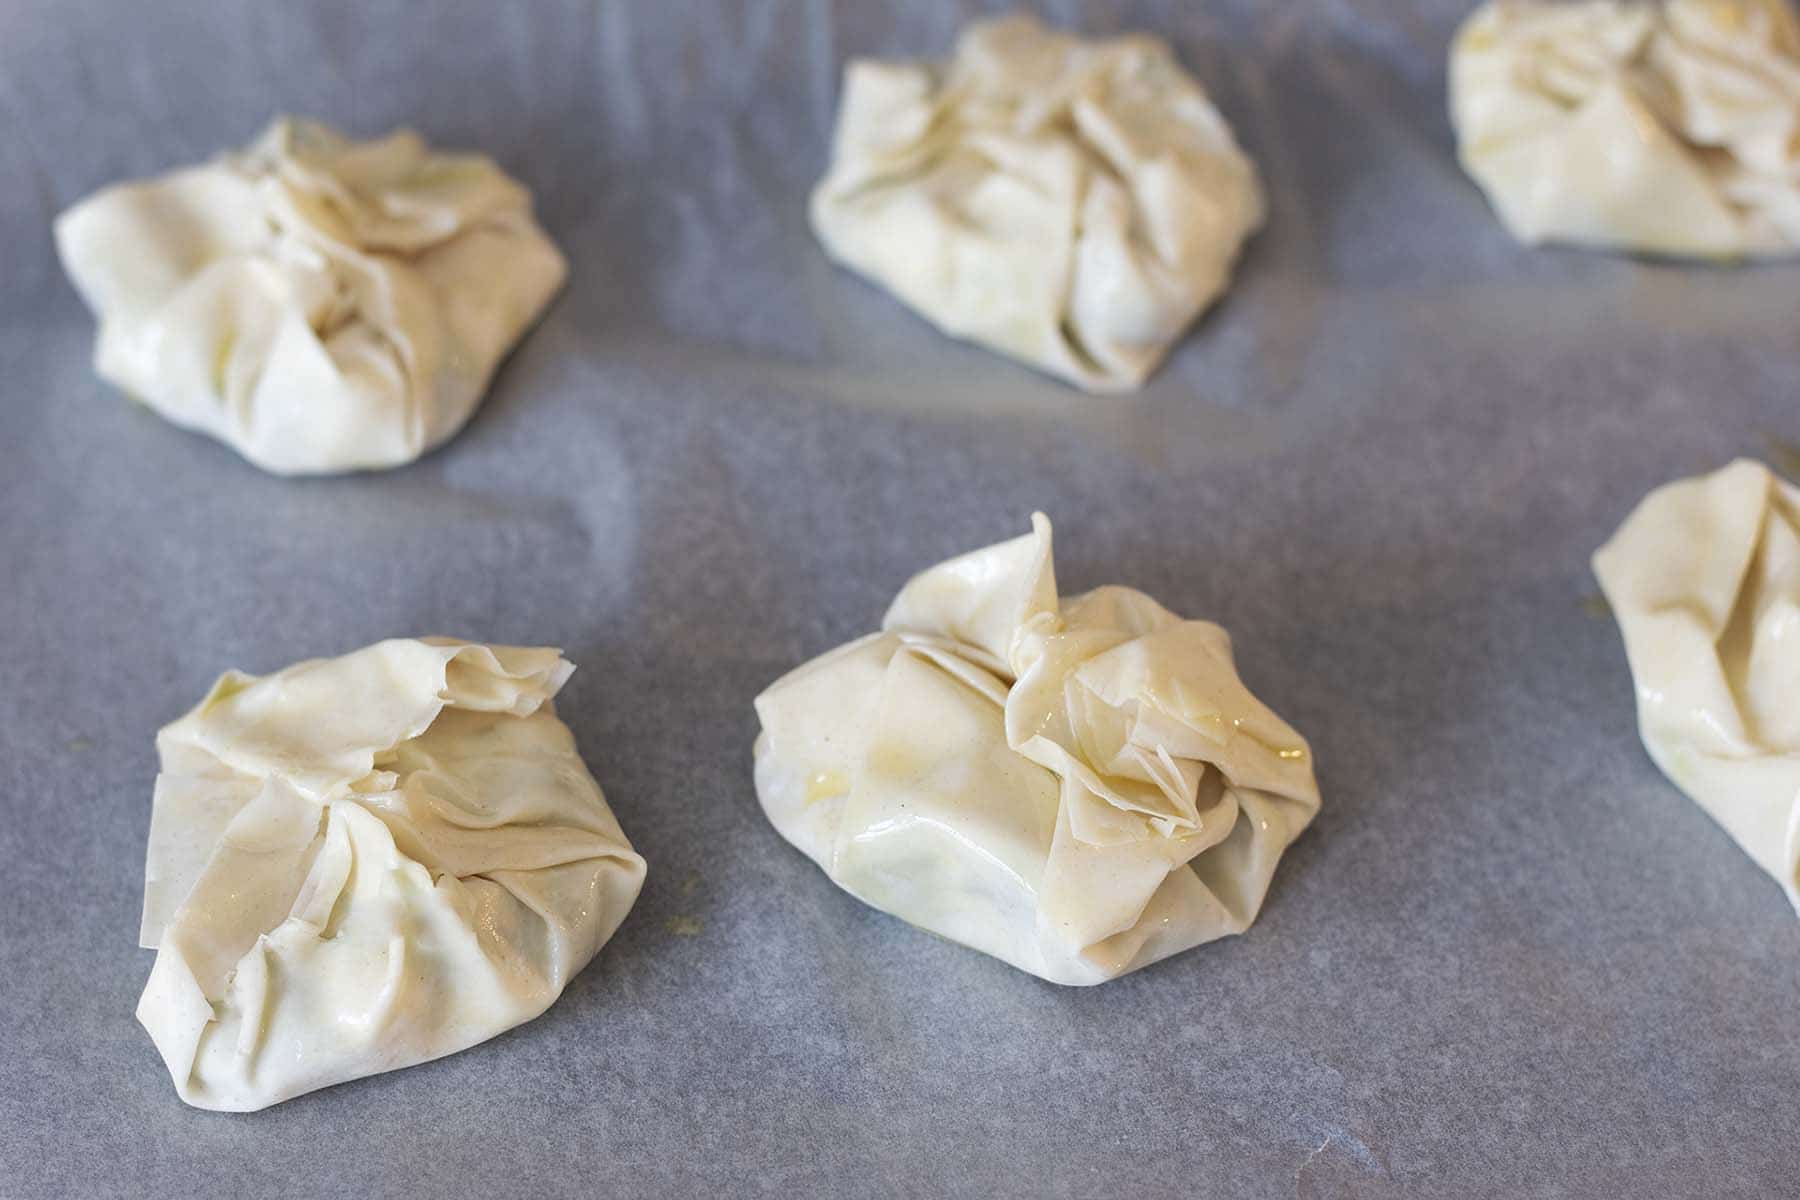 uncooked filo parcels on baking tray